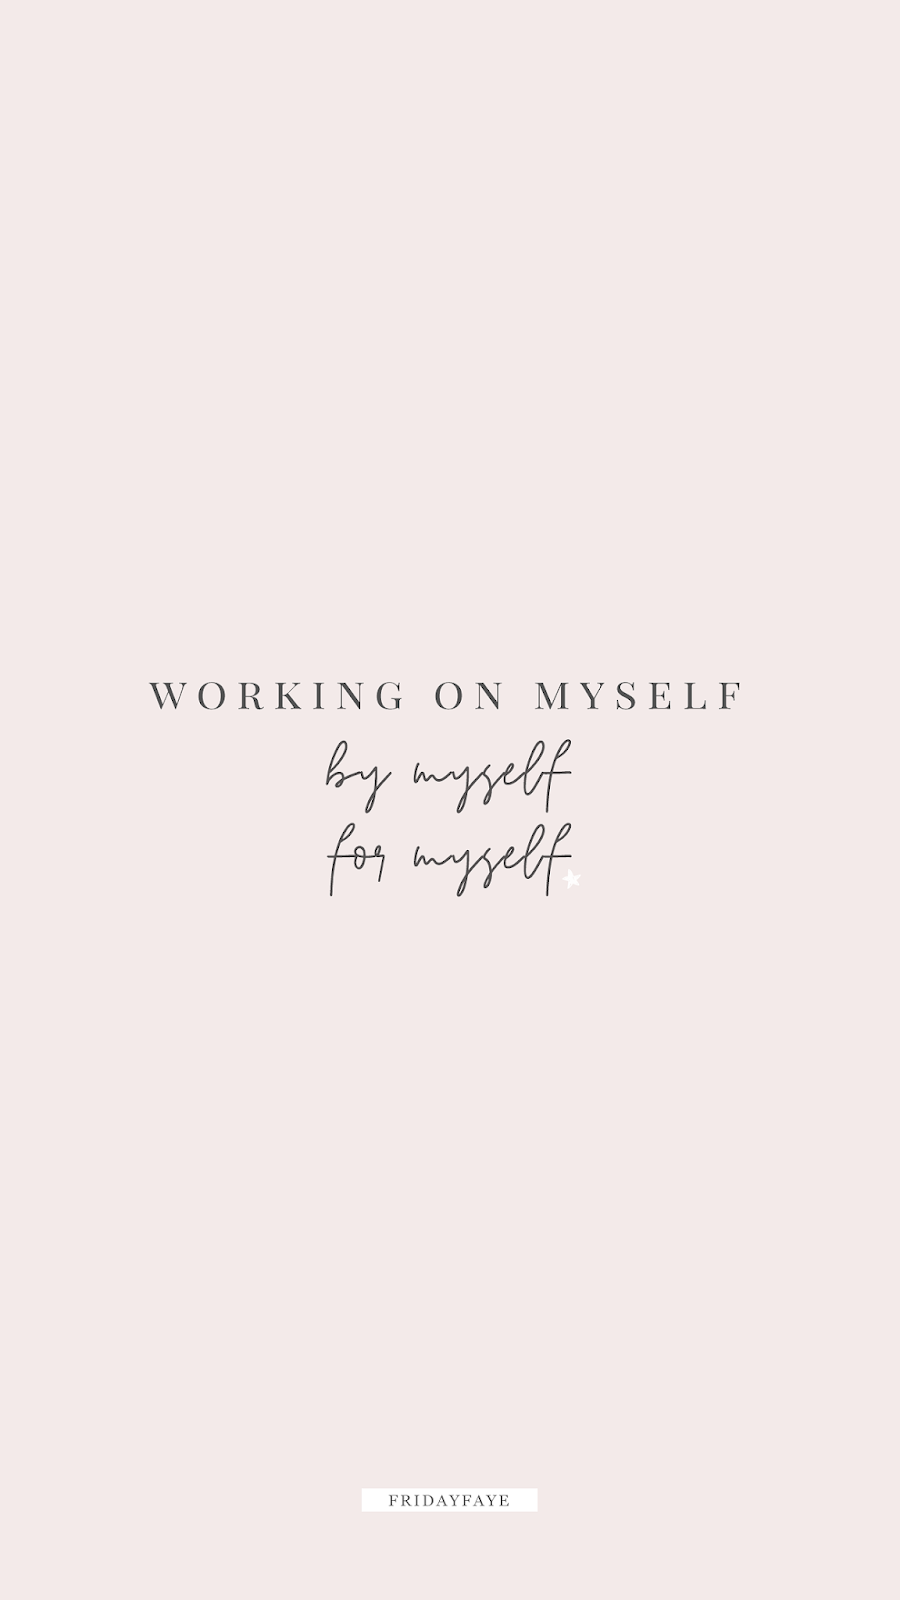 Free Girly Iphone Wallpapers July Edition Iphone Wallpaper Quotes Girly Self Love Quotes Quotes To Live By